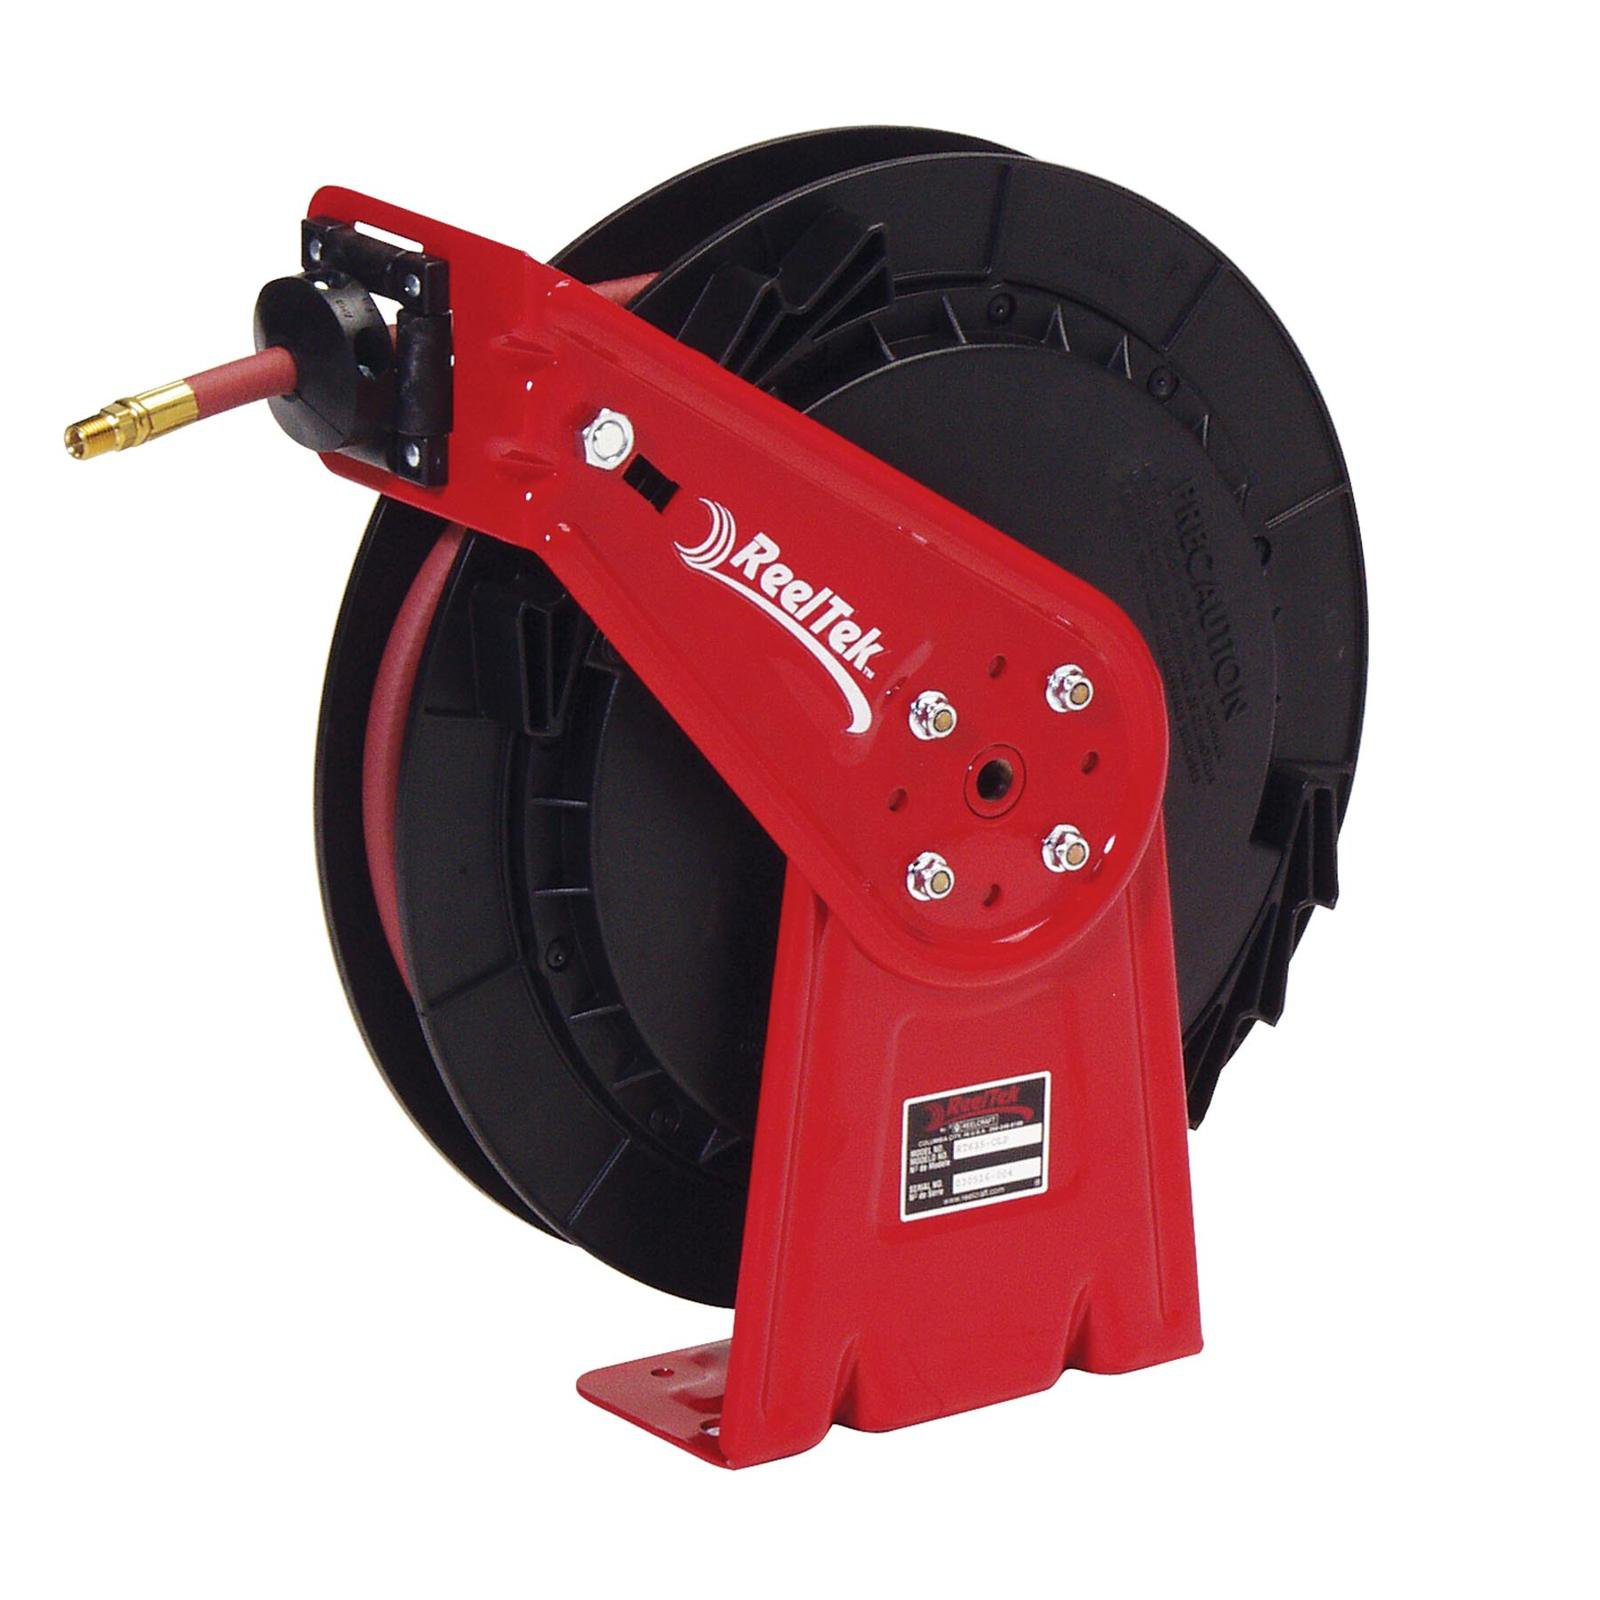 Industrial Strength Air & Water Hose Reel